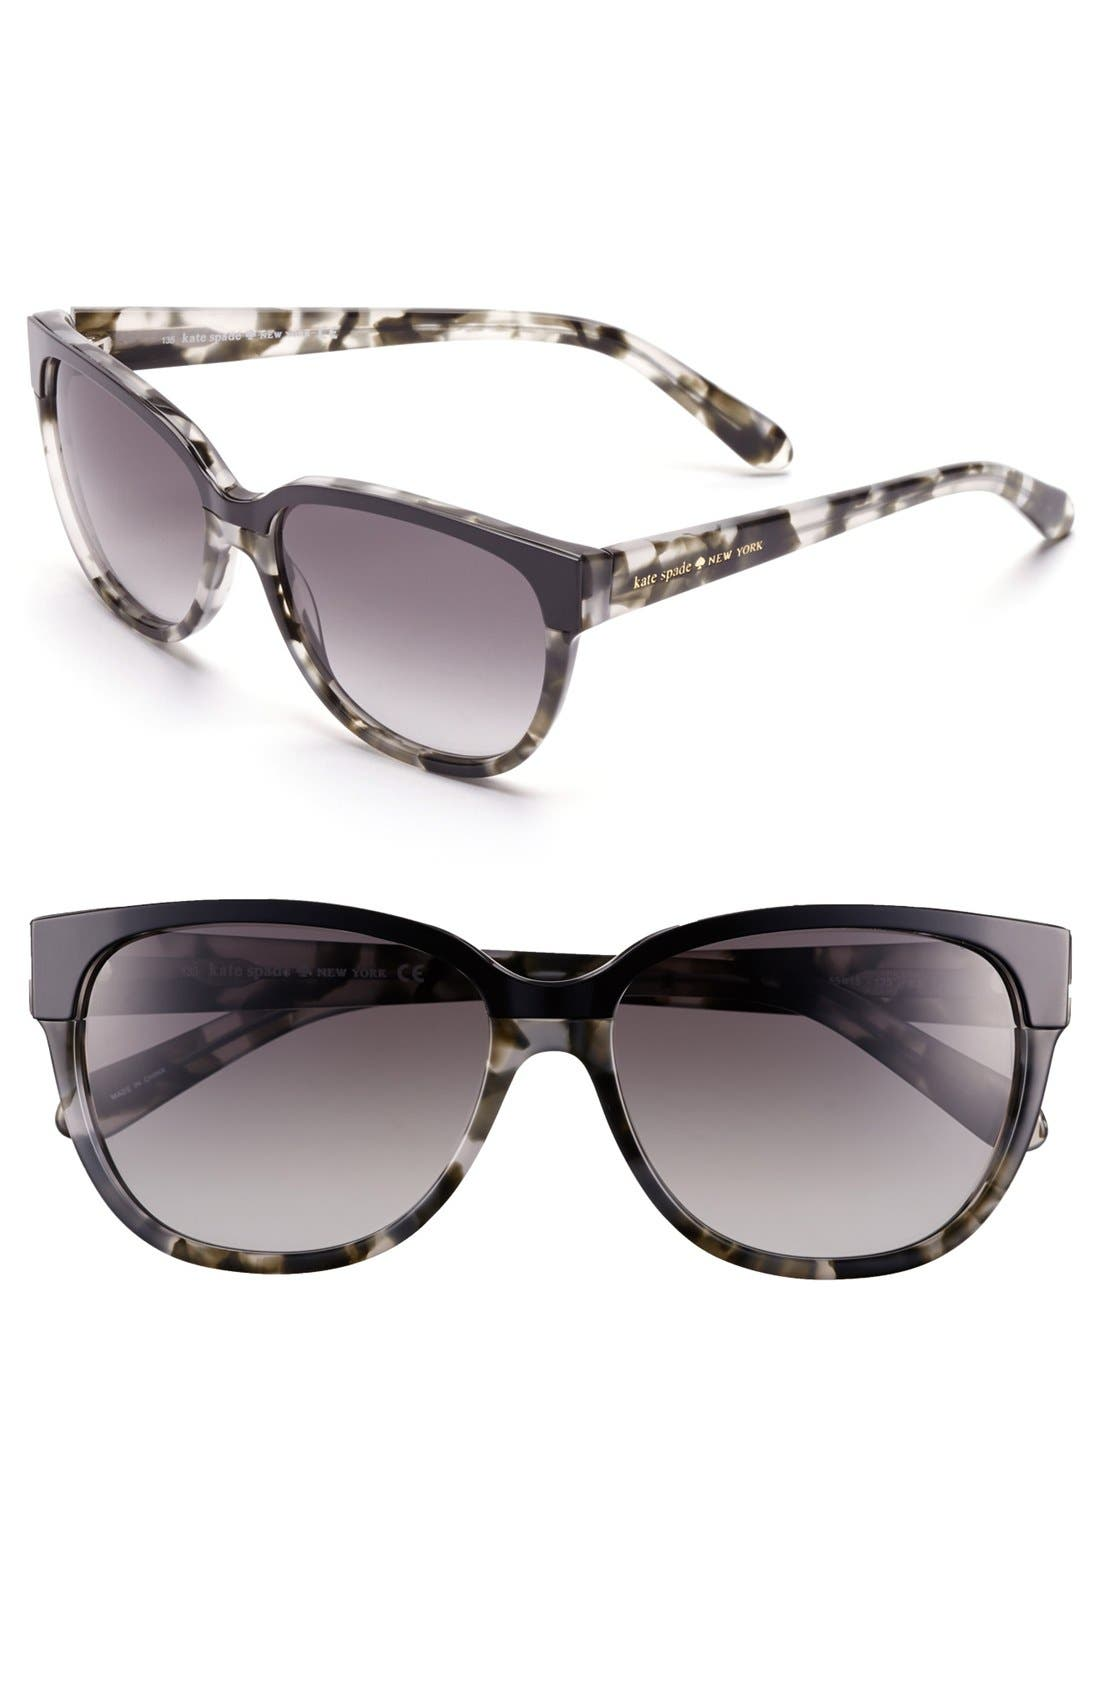 Alternate Image 1 Selected - kate spade new york 55mm retro sunglasses